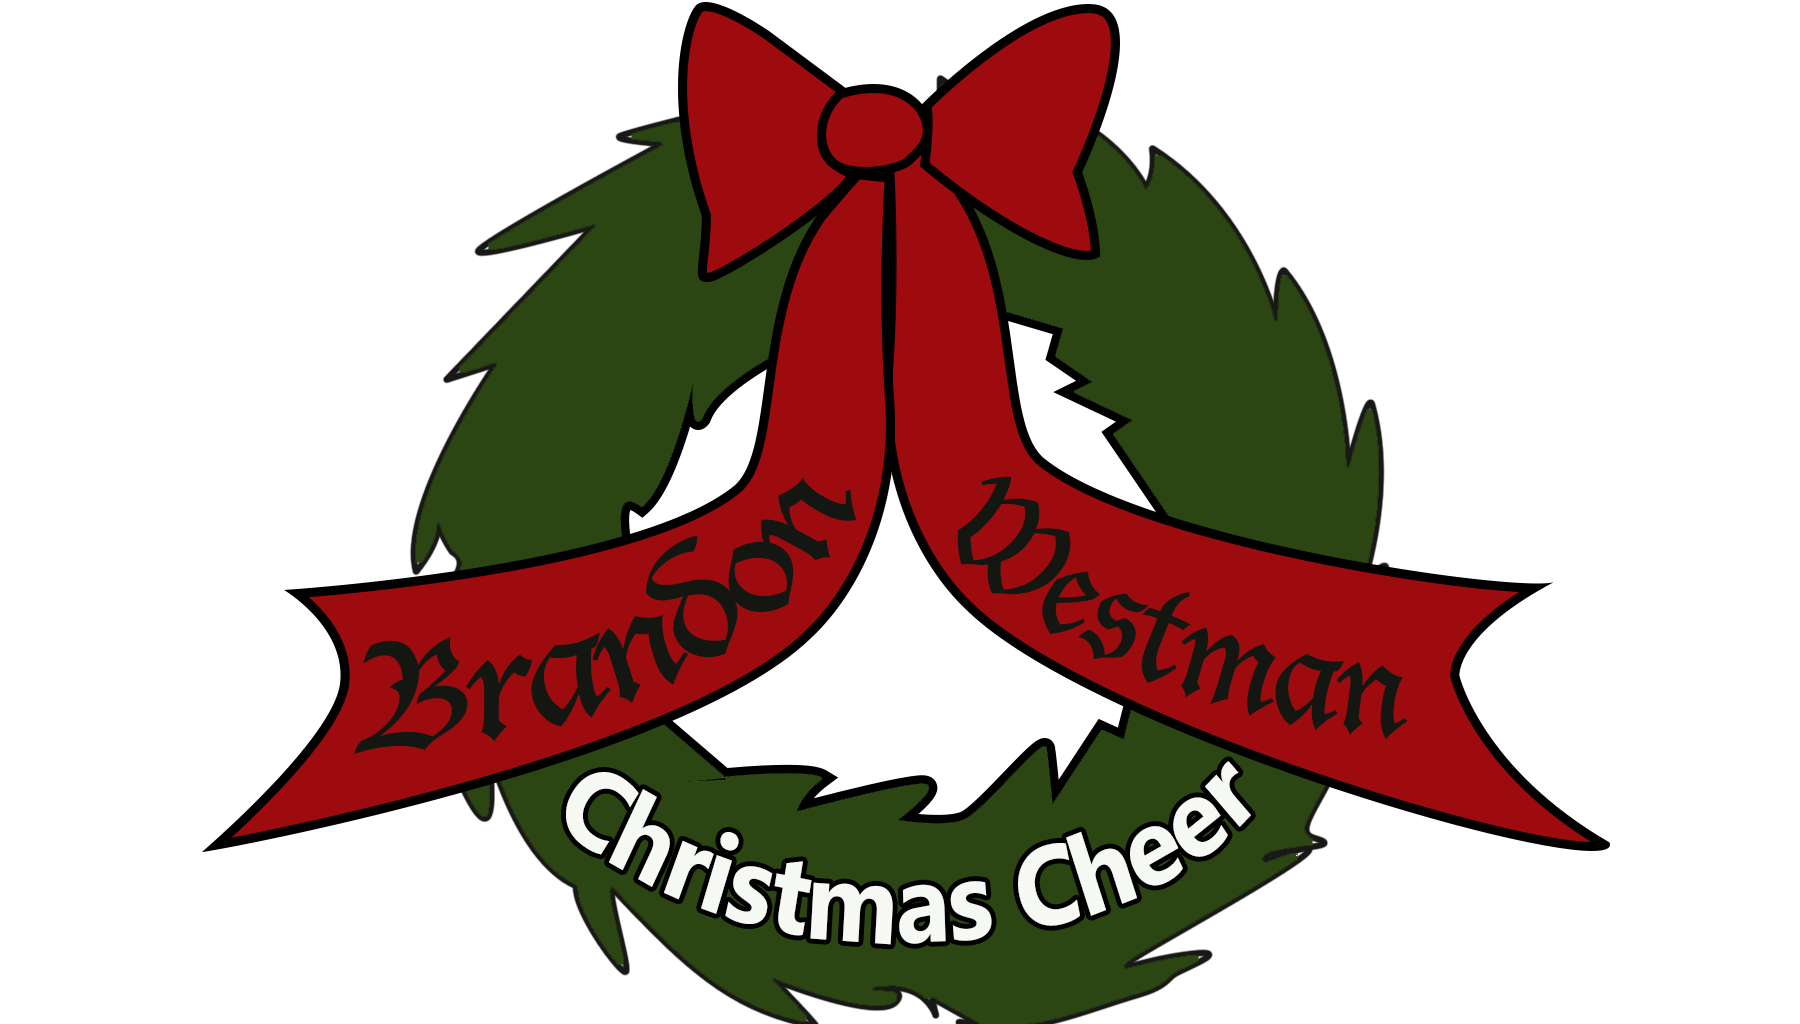 Brandon and Westman Christmas Cheer